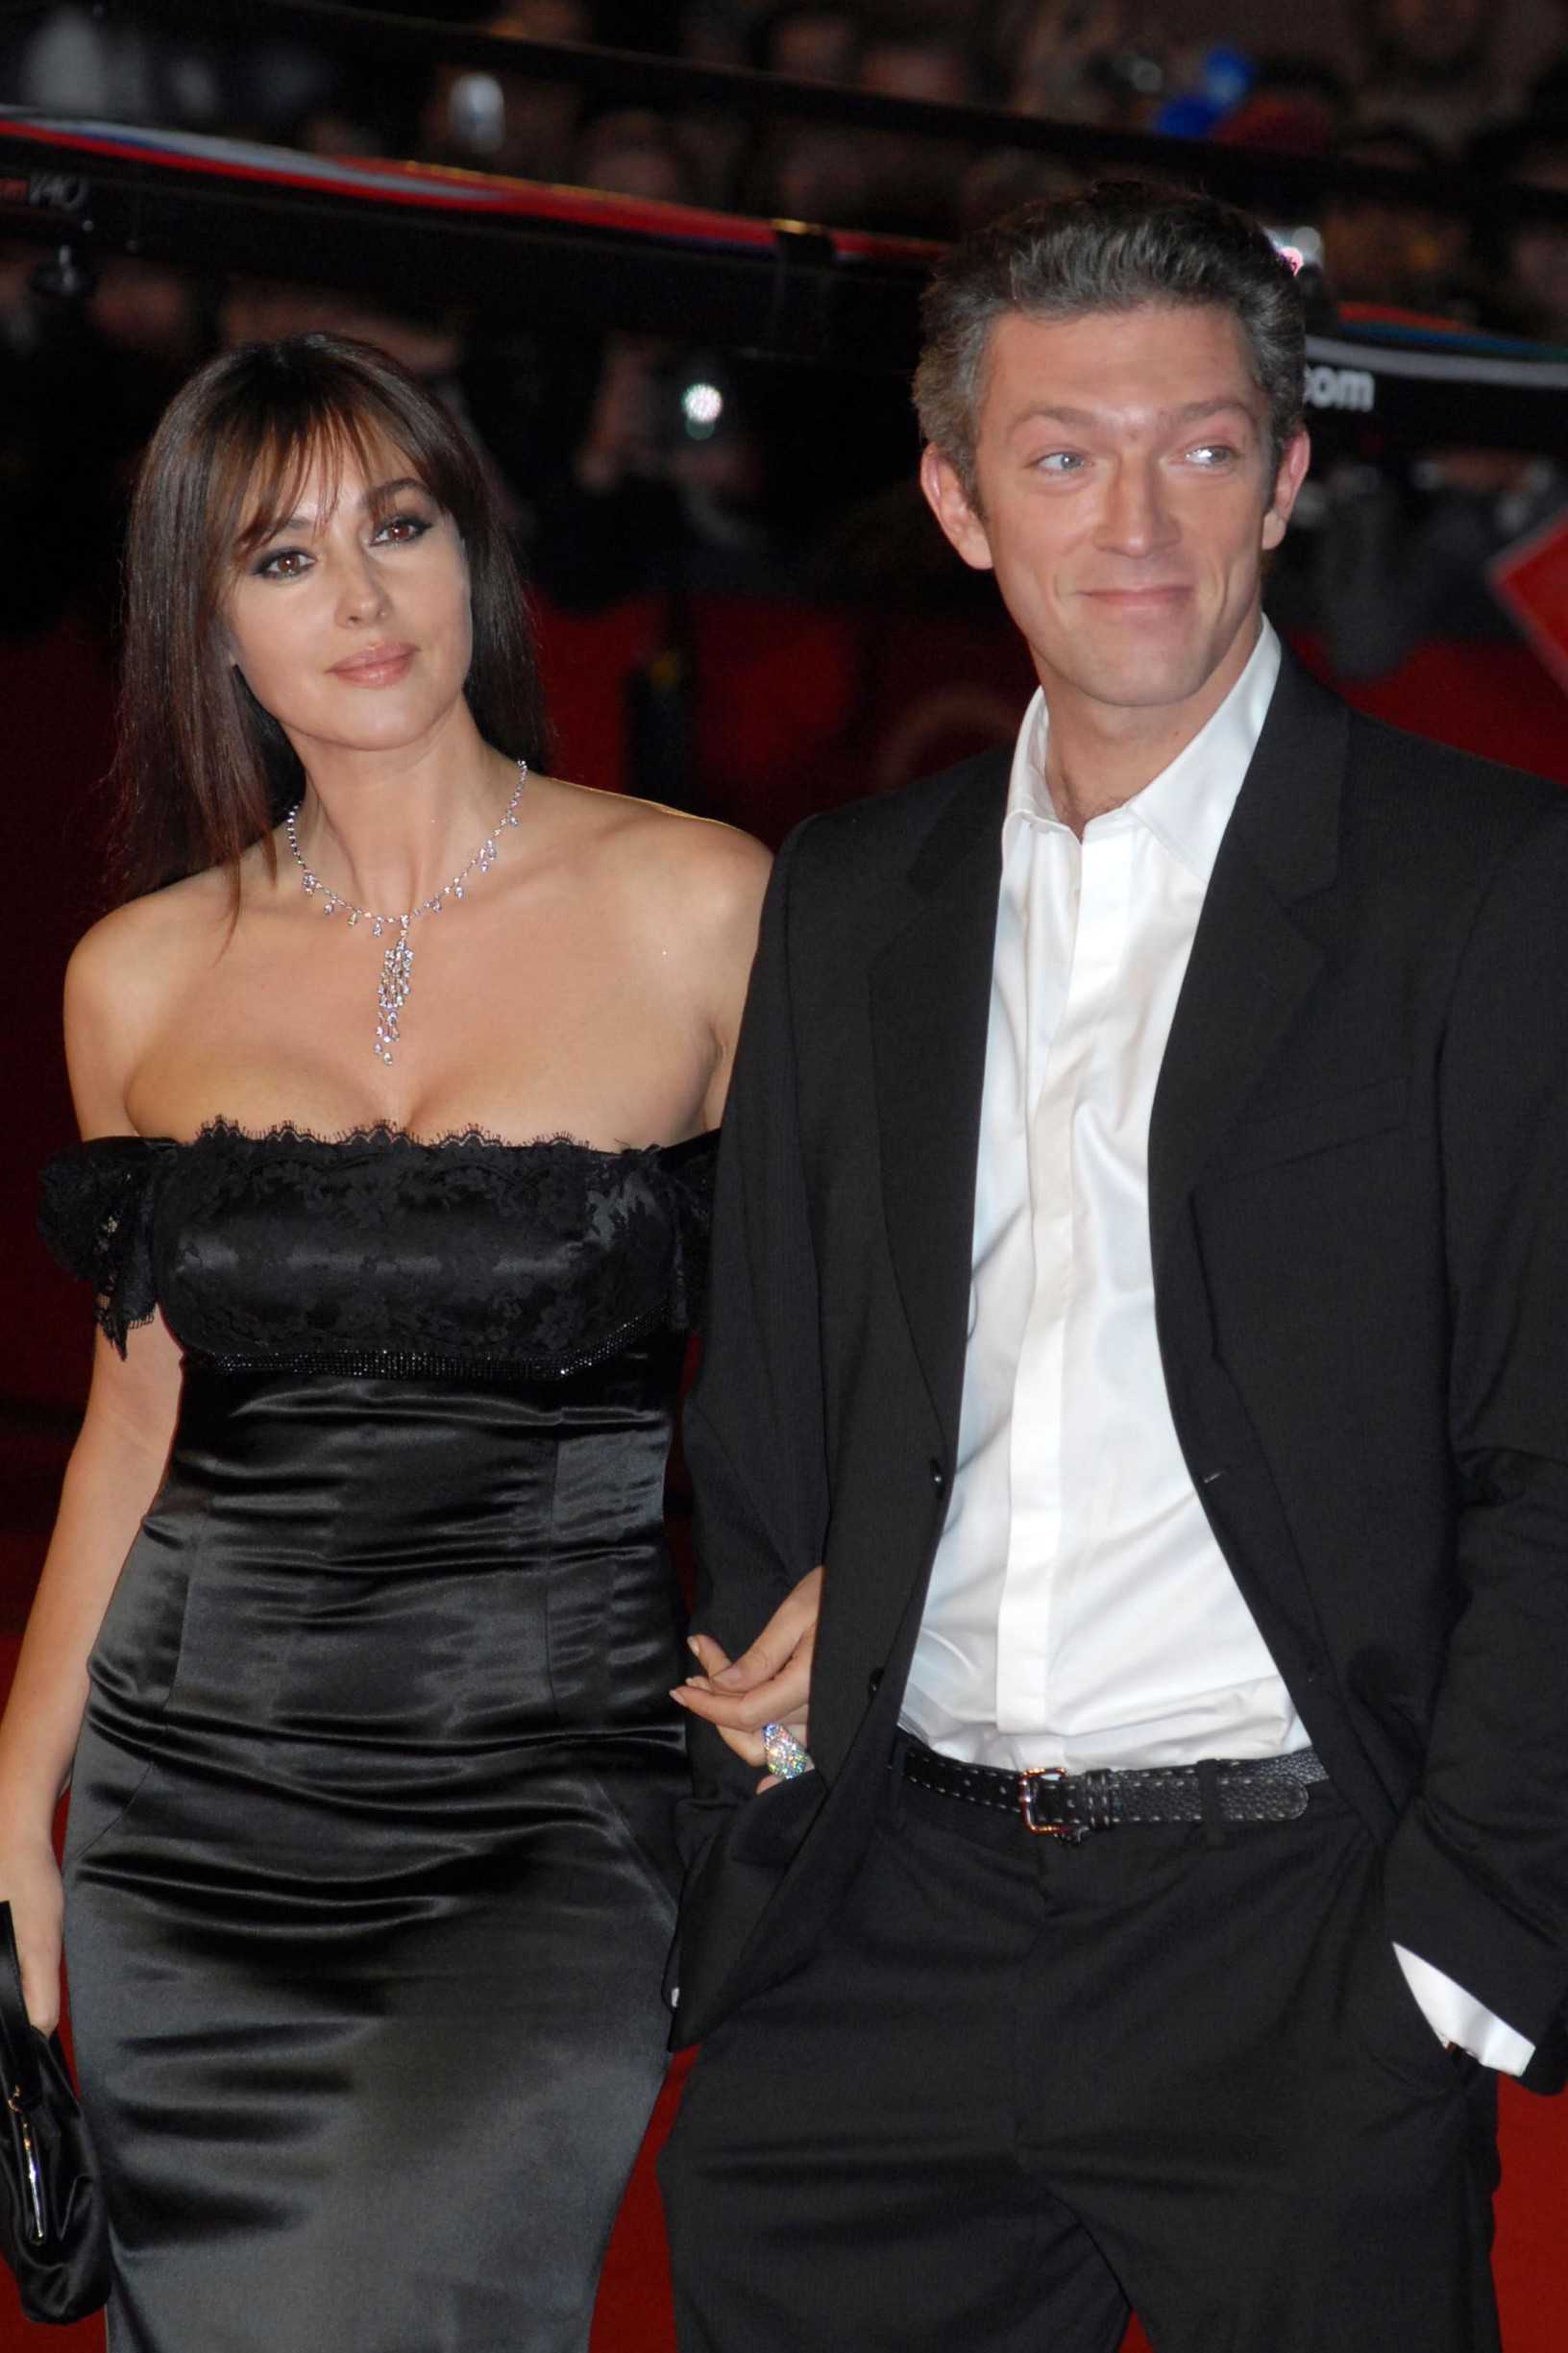 monica bellucci with her husband vincent casselroma 23-10-2008roma film festivalphoto mattoni/markanews,Image: 49151380, License: Rights-managed, Restrictions: Contributor country restriction: Worldwide, Worldwide, Worldwide, Worldwide, Worldwide, Worldwide. Contributor usage restriction: Advertising and promotion, Consumer goods, Direct mail and brochures, Indoor display, Internal business usage, Commercial electronic. Contributor media restriction: {AABA1D1E-5F99-43AC-A036-22D51B513A23}, {AABA1D1E-5F99-43AC-A036-22D51B513A23}, {AABA1D1E-5F99-43AC-A036-22D51B513A23}, {AABA1D1E-5F99-43AC-A036-22D51B513A23}, {AABA1D1E-5F99-43AC-A036-22D51B513A23}, {AABA1D1E-5F99-43AC-A036-22D51B513A23}., Model Release: no, Credit line: MARKA / Alamy / Alamy / Profimedia